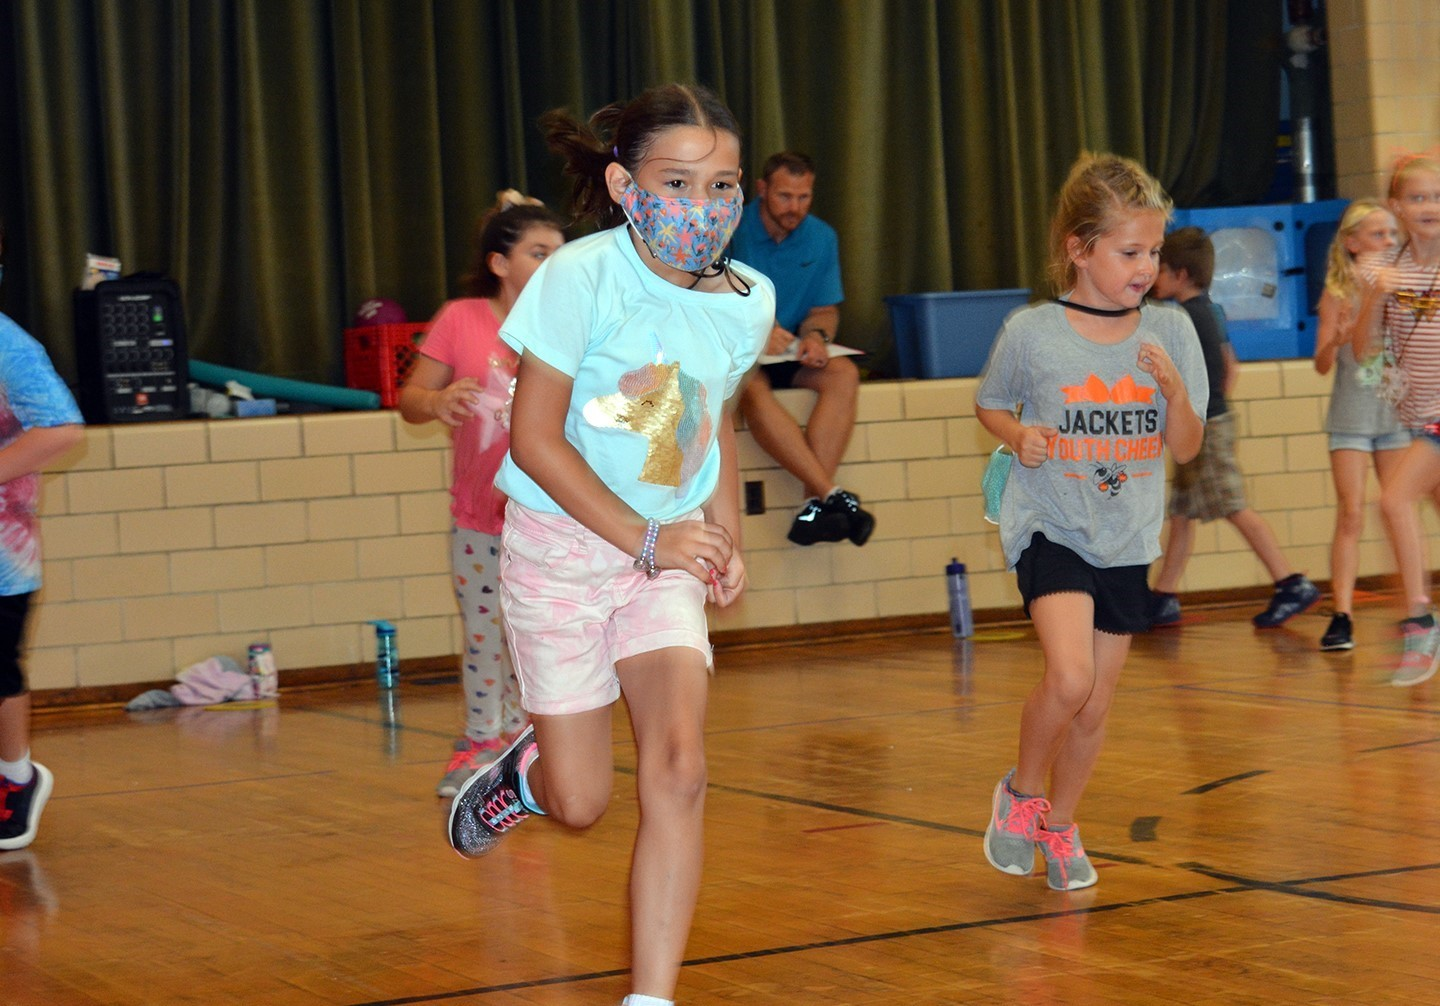 Students running in Mr. Robert's gym class.